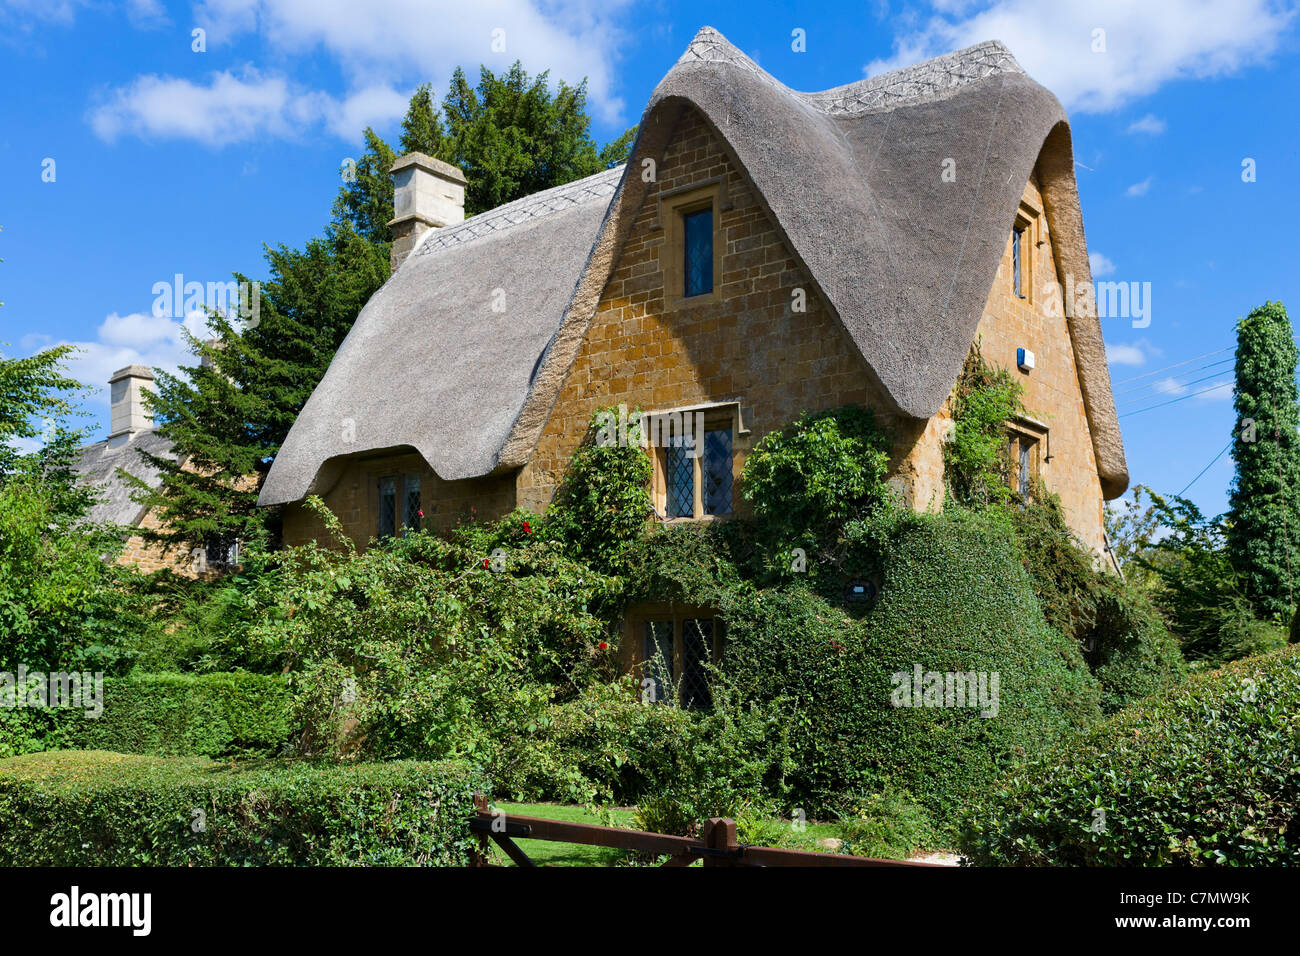 Thatched Cottage In The Cotswold Village Of Great Tew Oxfordshire England UK